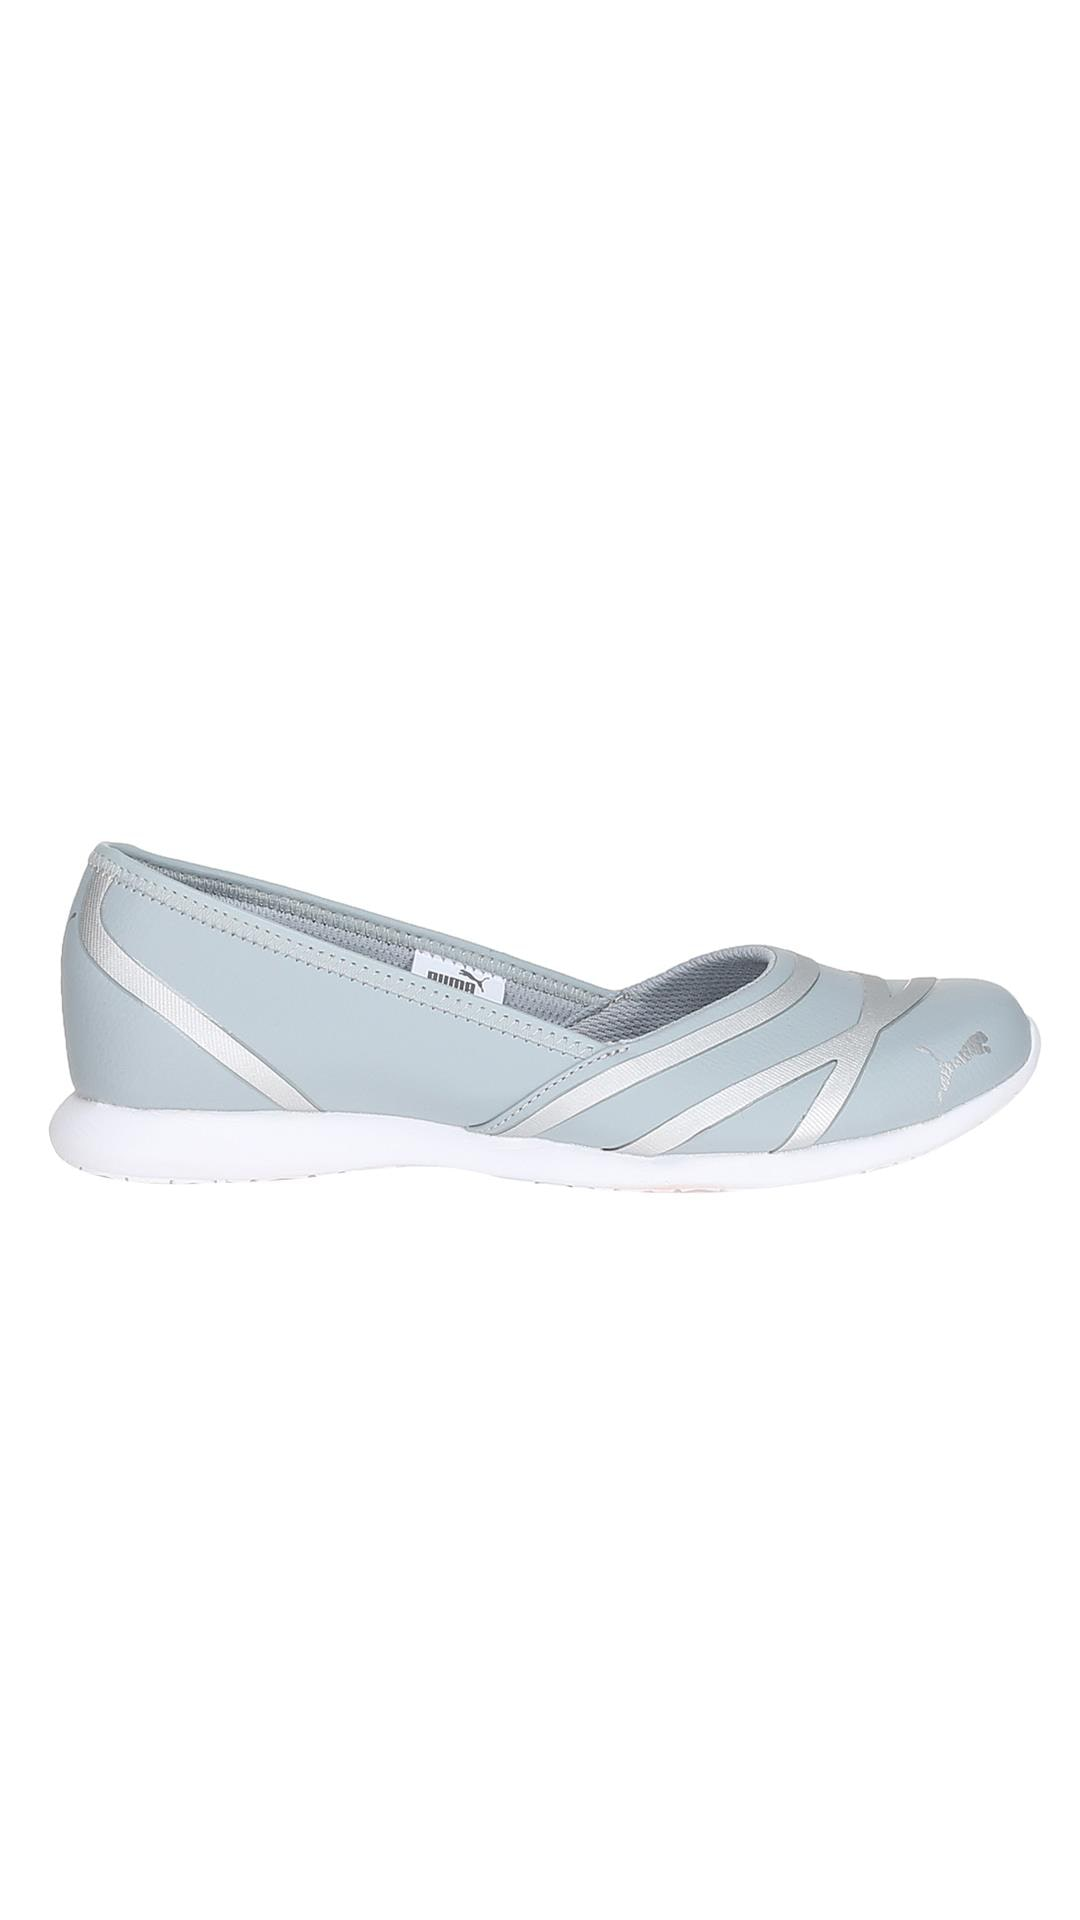 Buy Puma Women Grey Online at Low Prices in India - Paytmmall.com b8c8c7399